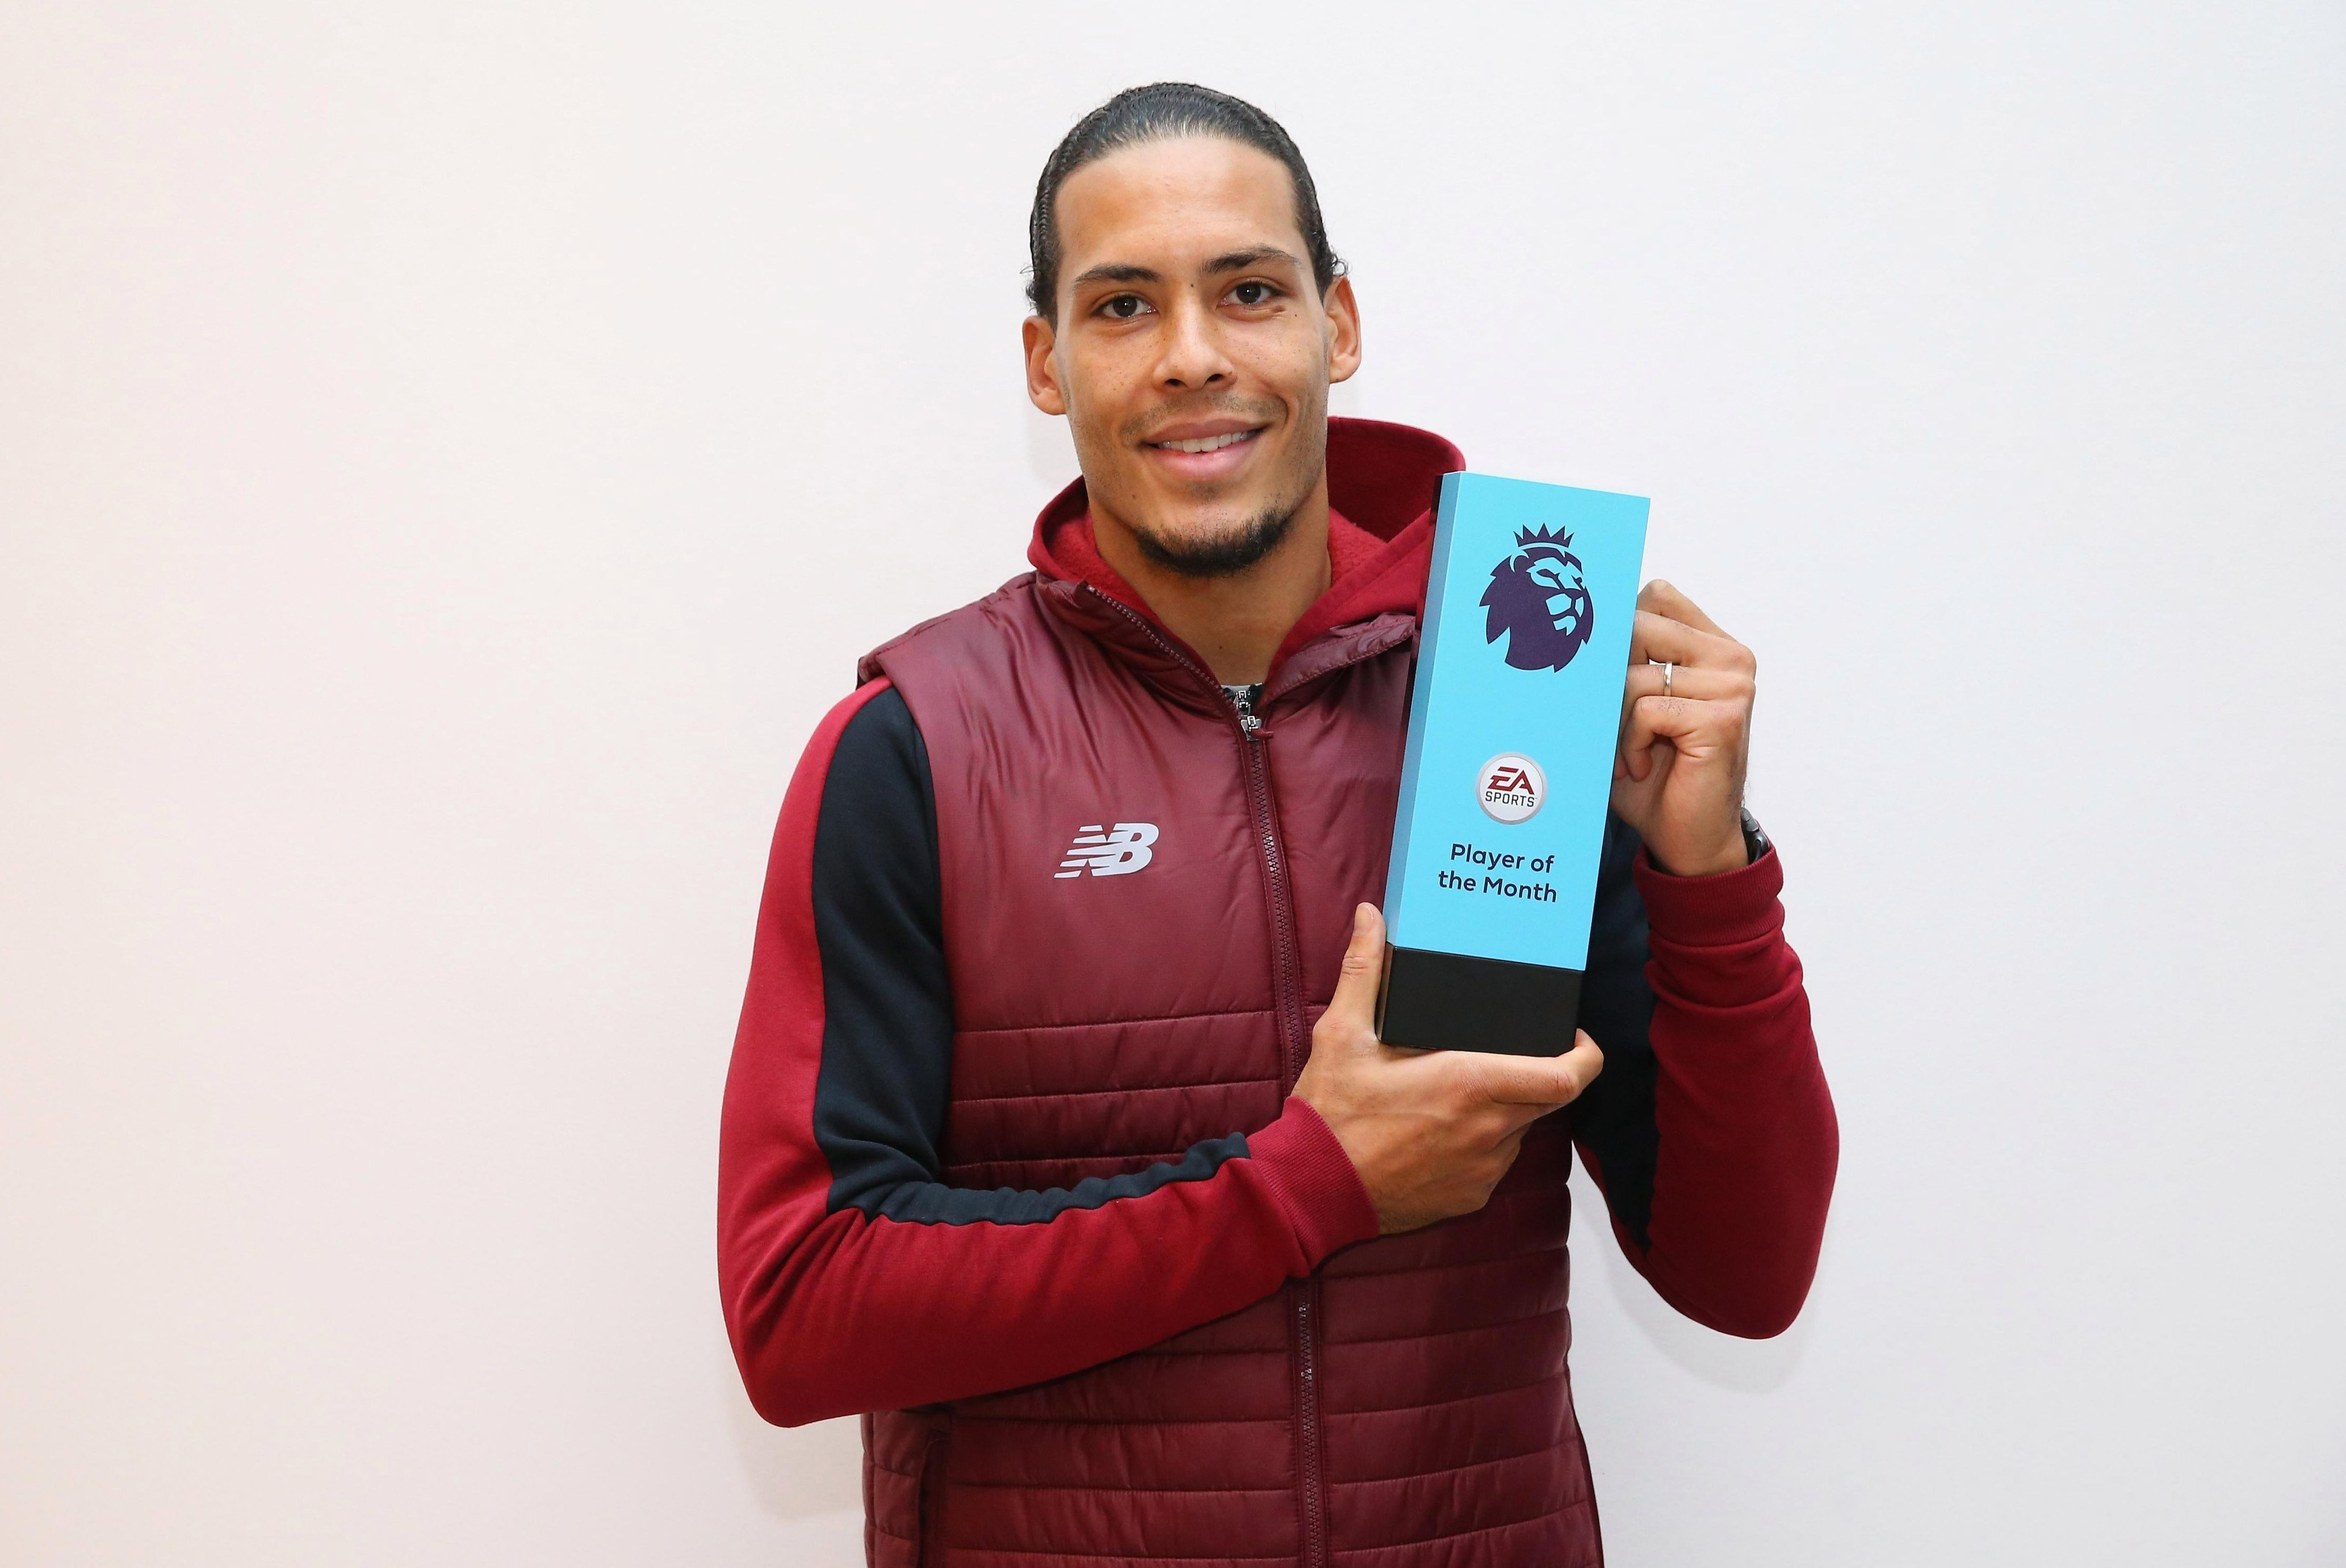 Virgil van Dijk becomes first defender since 2013 to win Player of the Month